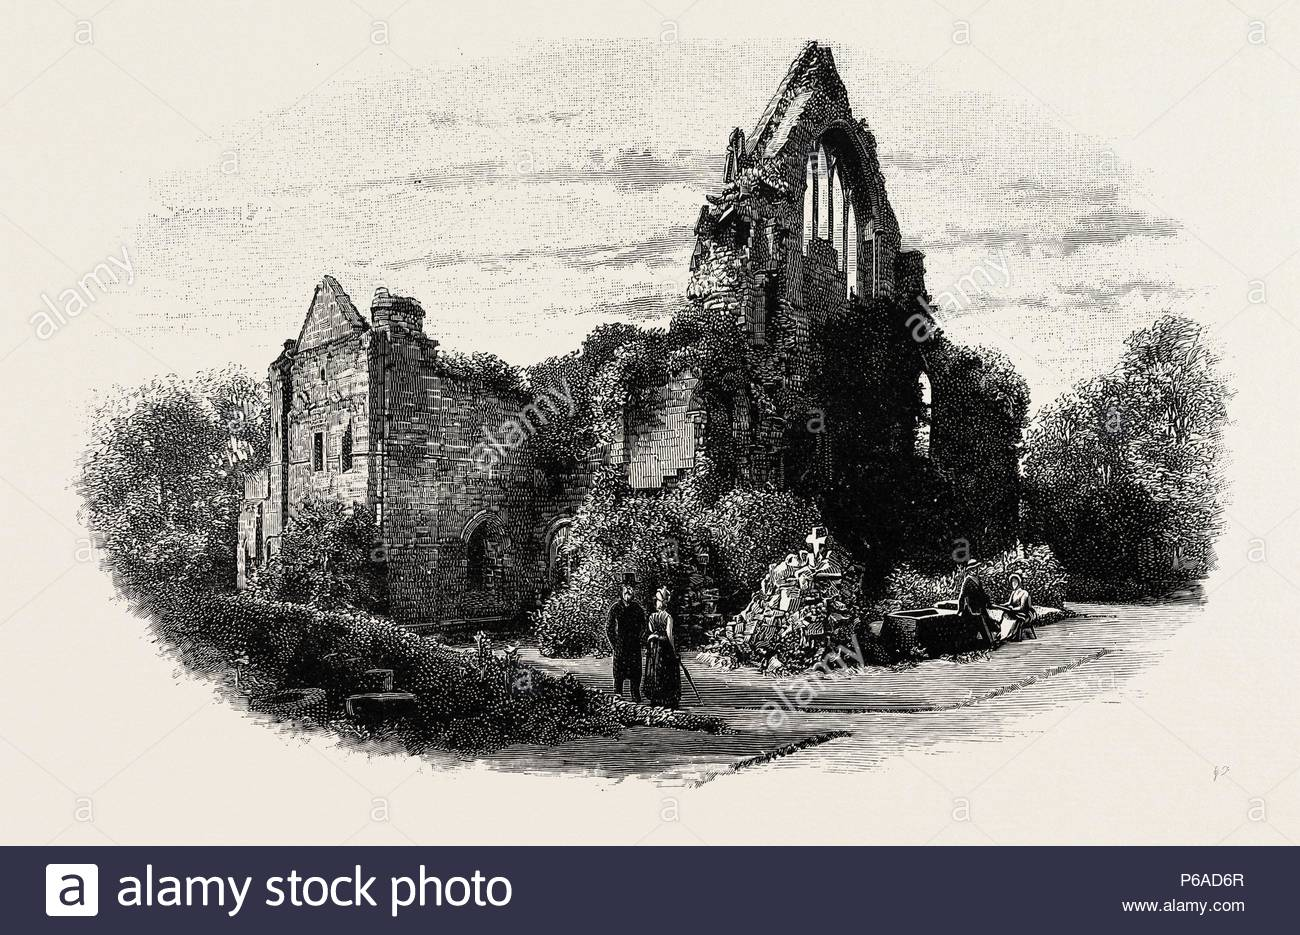 DRYBURGH ABBEY, FROM THE EAST, UK. Dryburgh Abbey, near Dryburgh on the banks of the River Tweed in the Scottish Borders, was nominally founded on 10 November (Martinmas) 1150 in an agreement between Hugh de Morville, Lord of Lauderdale and Constable of Scotland, and the Premonstratensian canons regular from Alnwick Abbey in Northumberland. - Stock Image